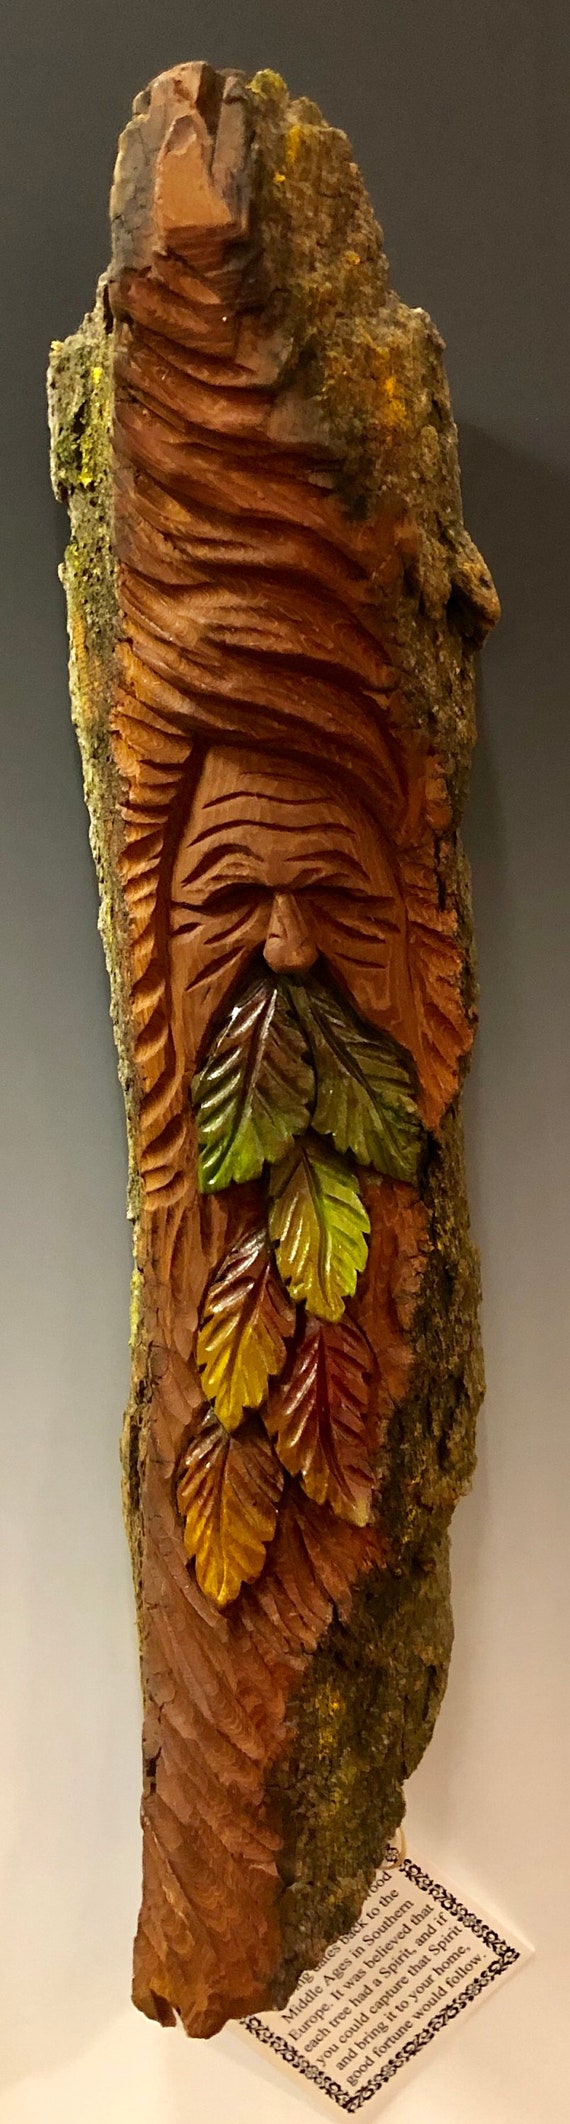 HAND CARVED original Tree Spirit with leaves from 100 year old Cottonwood Bark